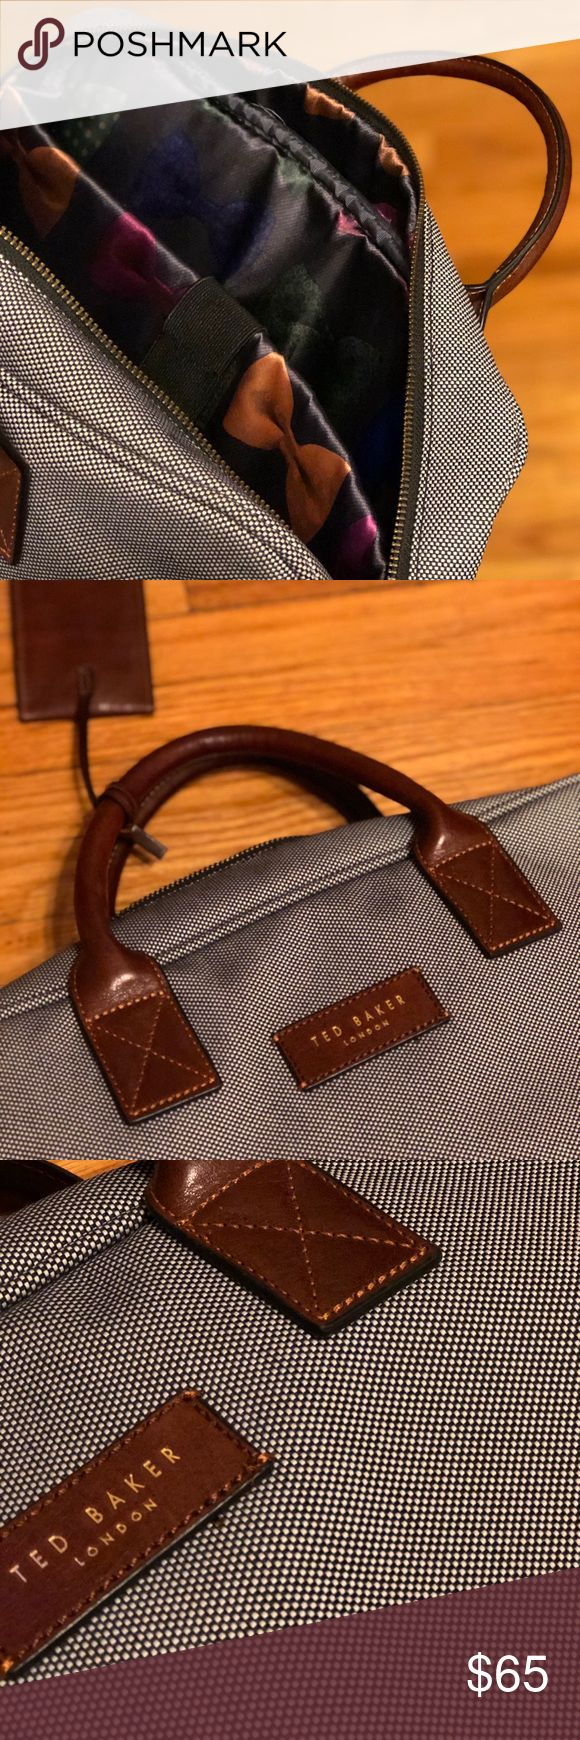 Ted Baker Men's Slim Briefcase Ted Baker Slim Canvas Briefcase, bow tie print liner, internal laptop sleeve, leather handles and luggage tag Ted Baker Bags Briefcases